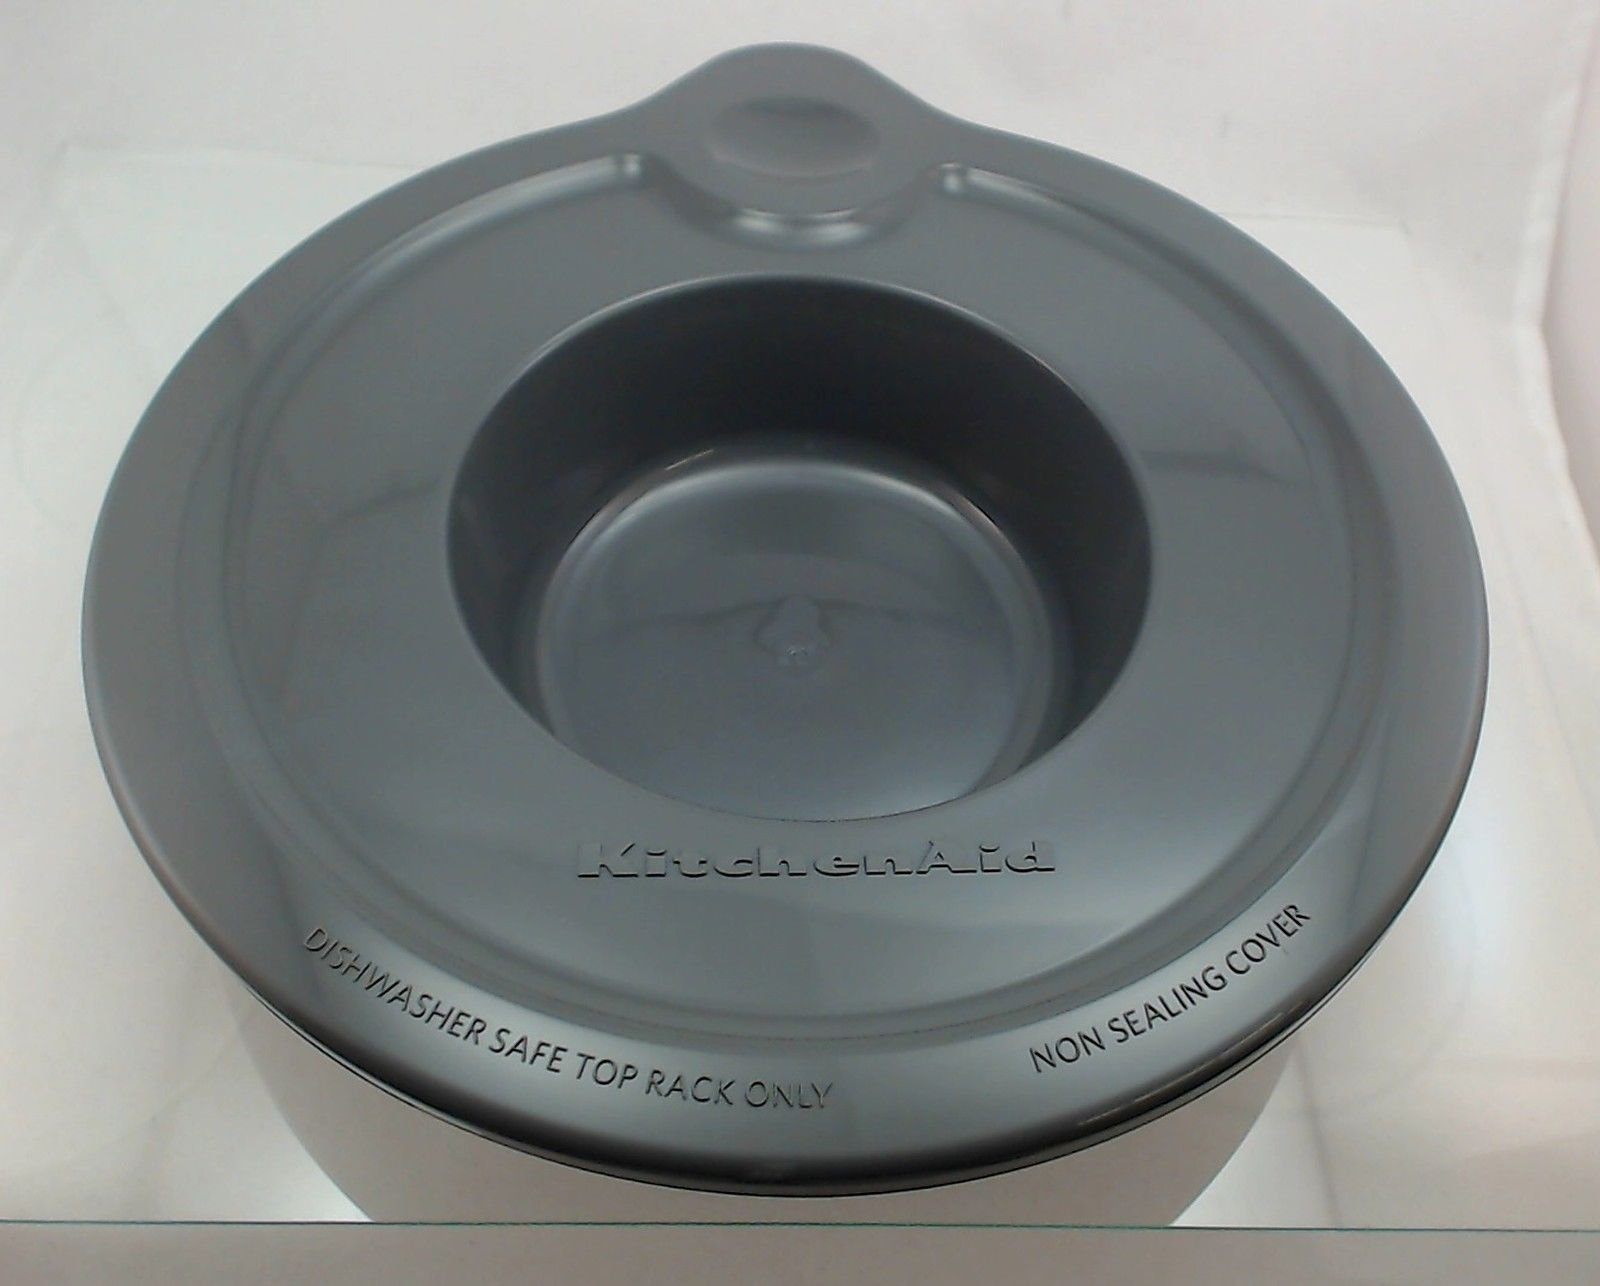 Whirlpool Part Number W10223140: Cover-Bowl 2